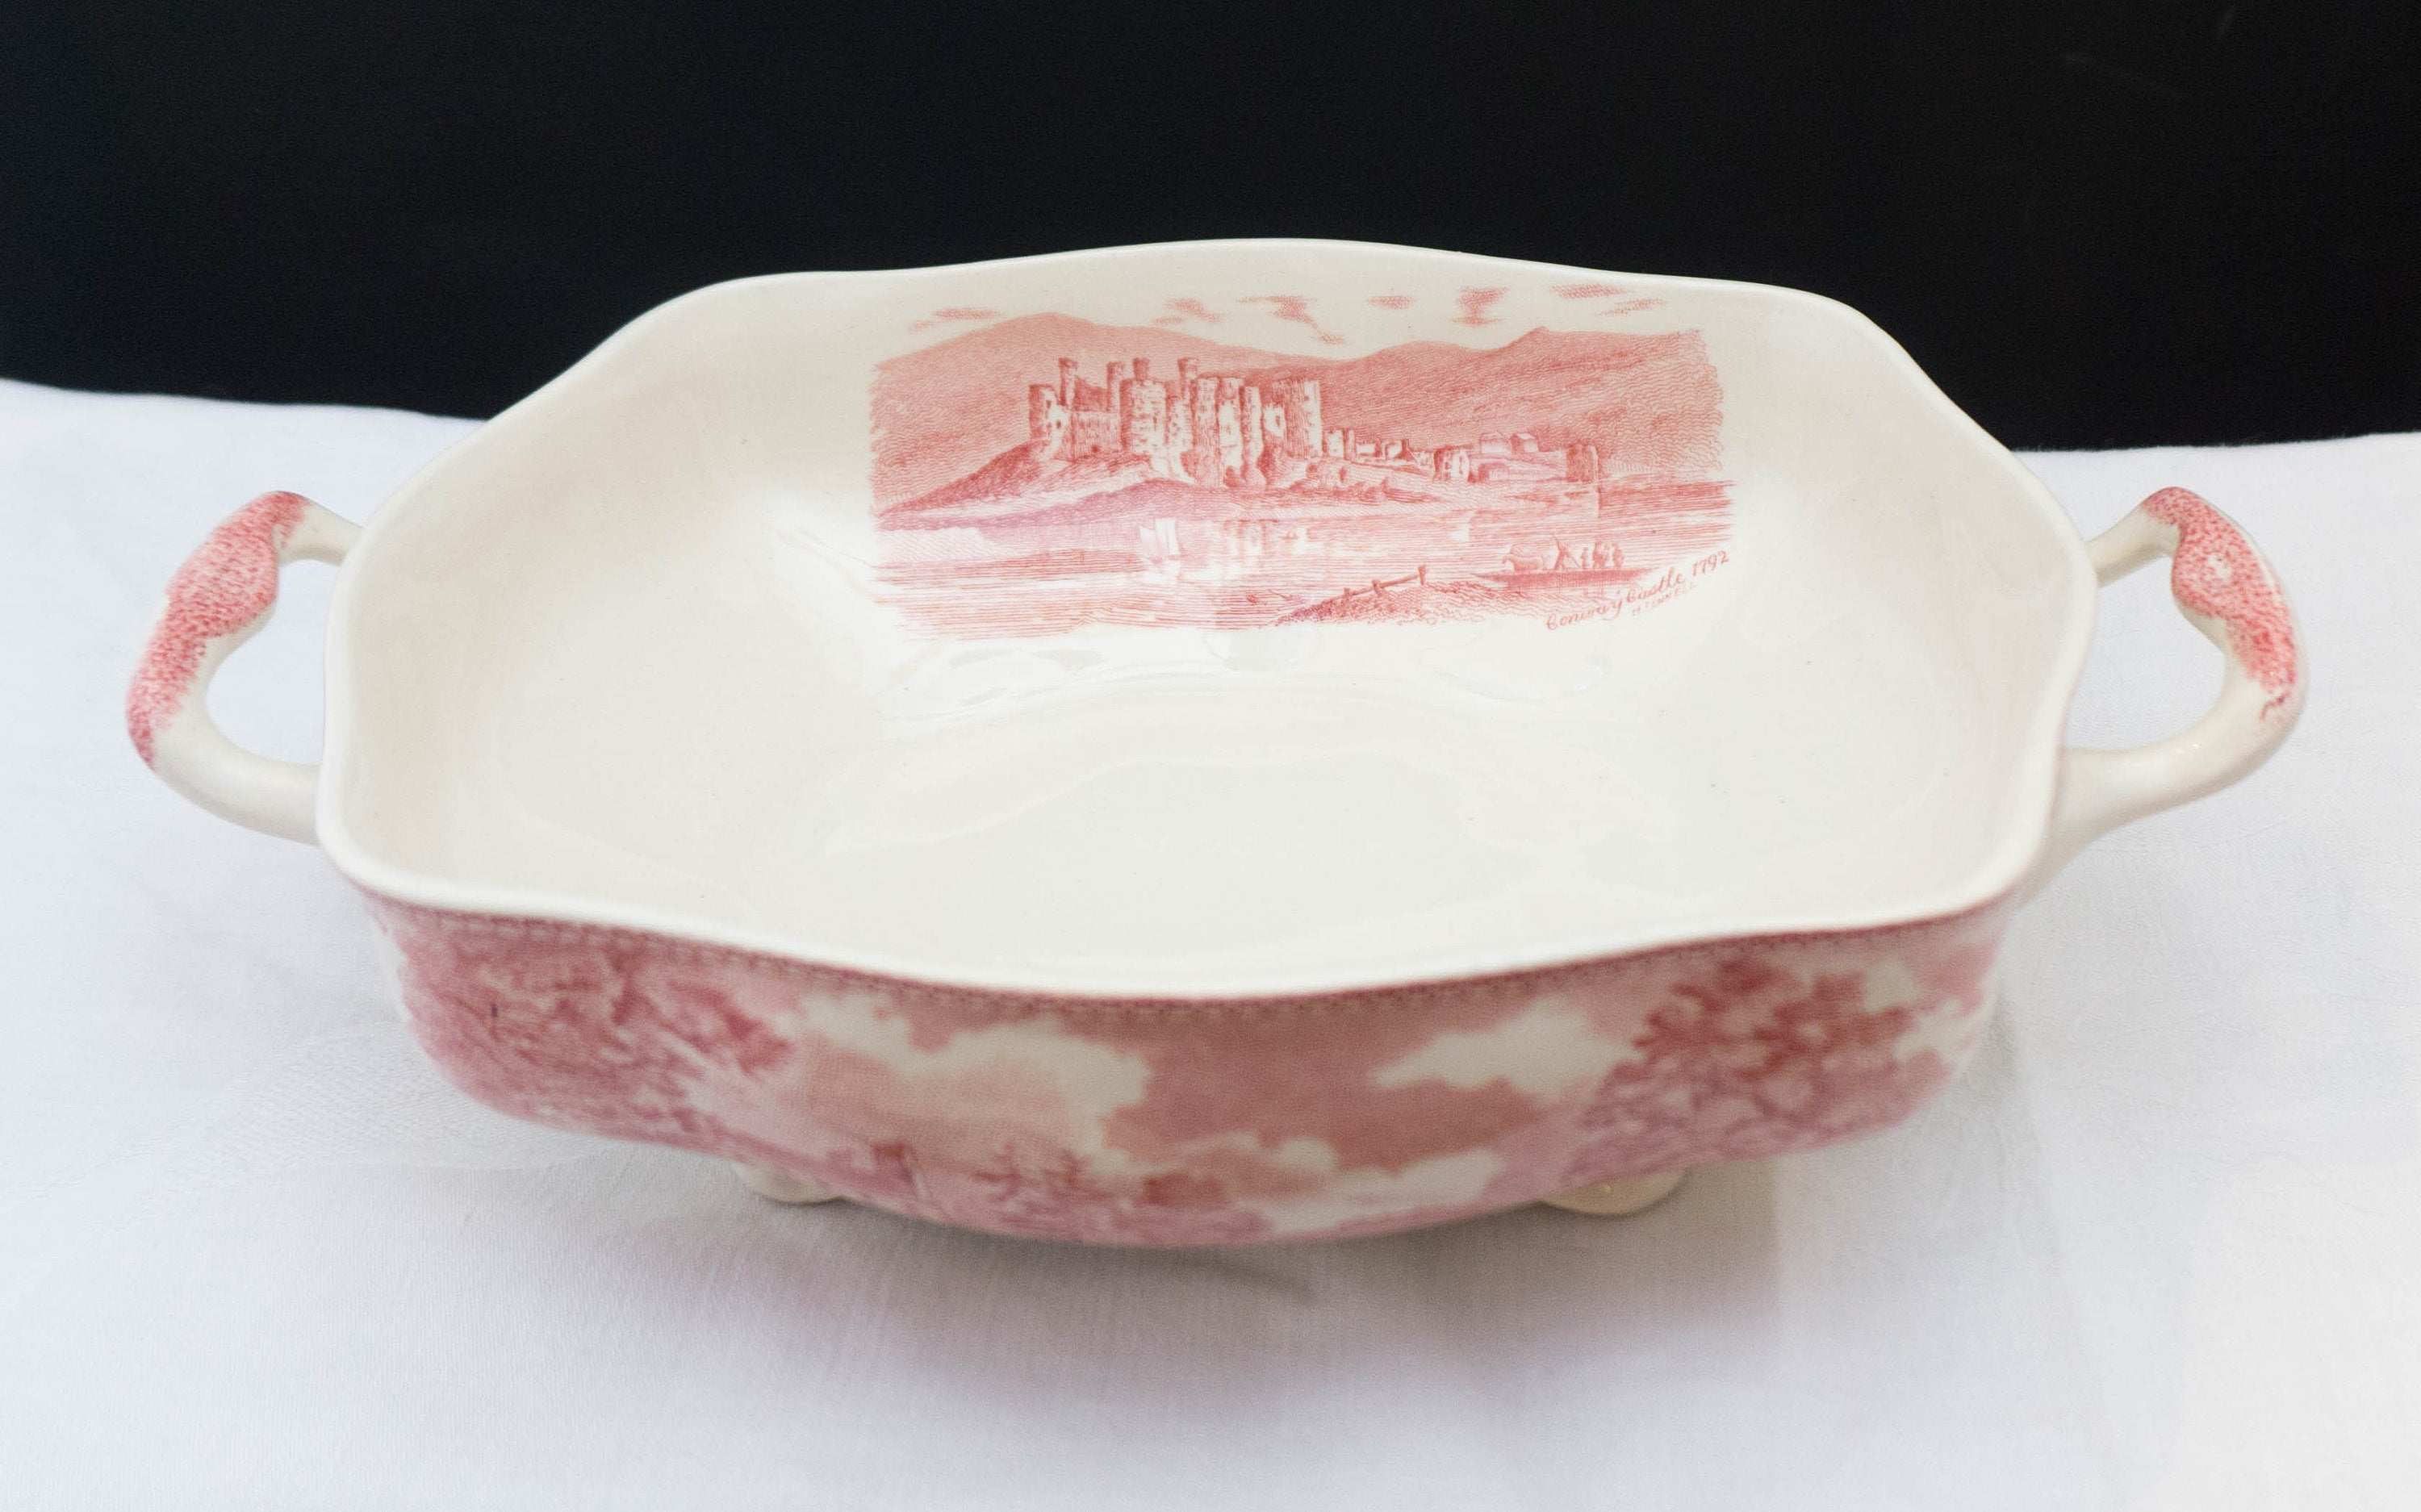 Vintage Square Vegetable No Lid Old Britain Castles Pink (Crown Made In England) by JOHNSON BROTHERS c1930